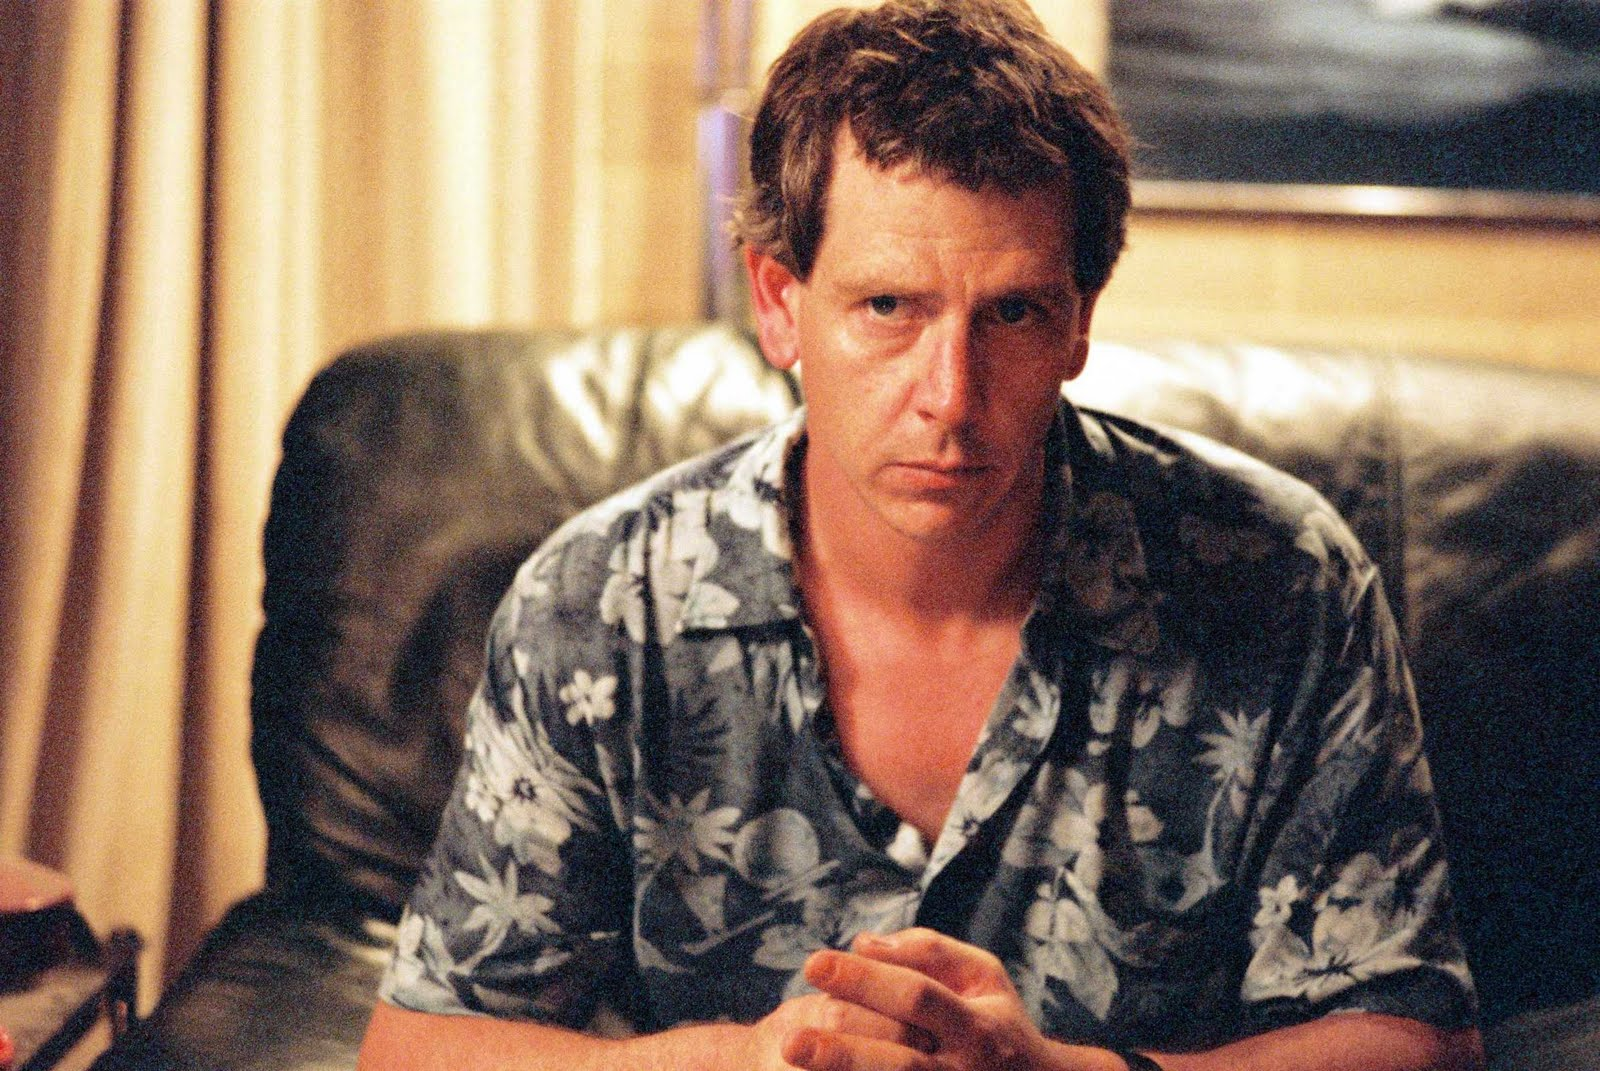 BEN MENDELSOHN IS UNTRUSTWORTHY